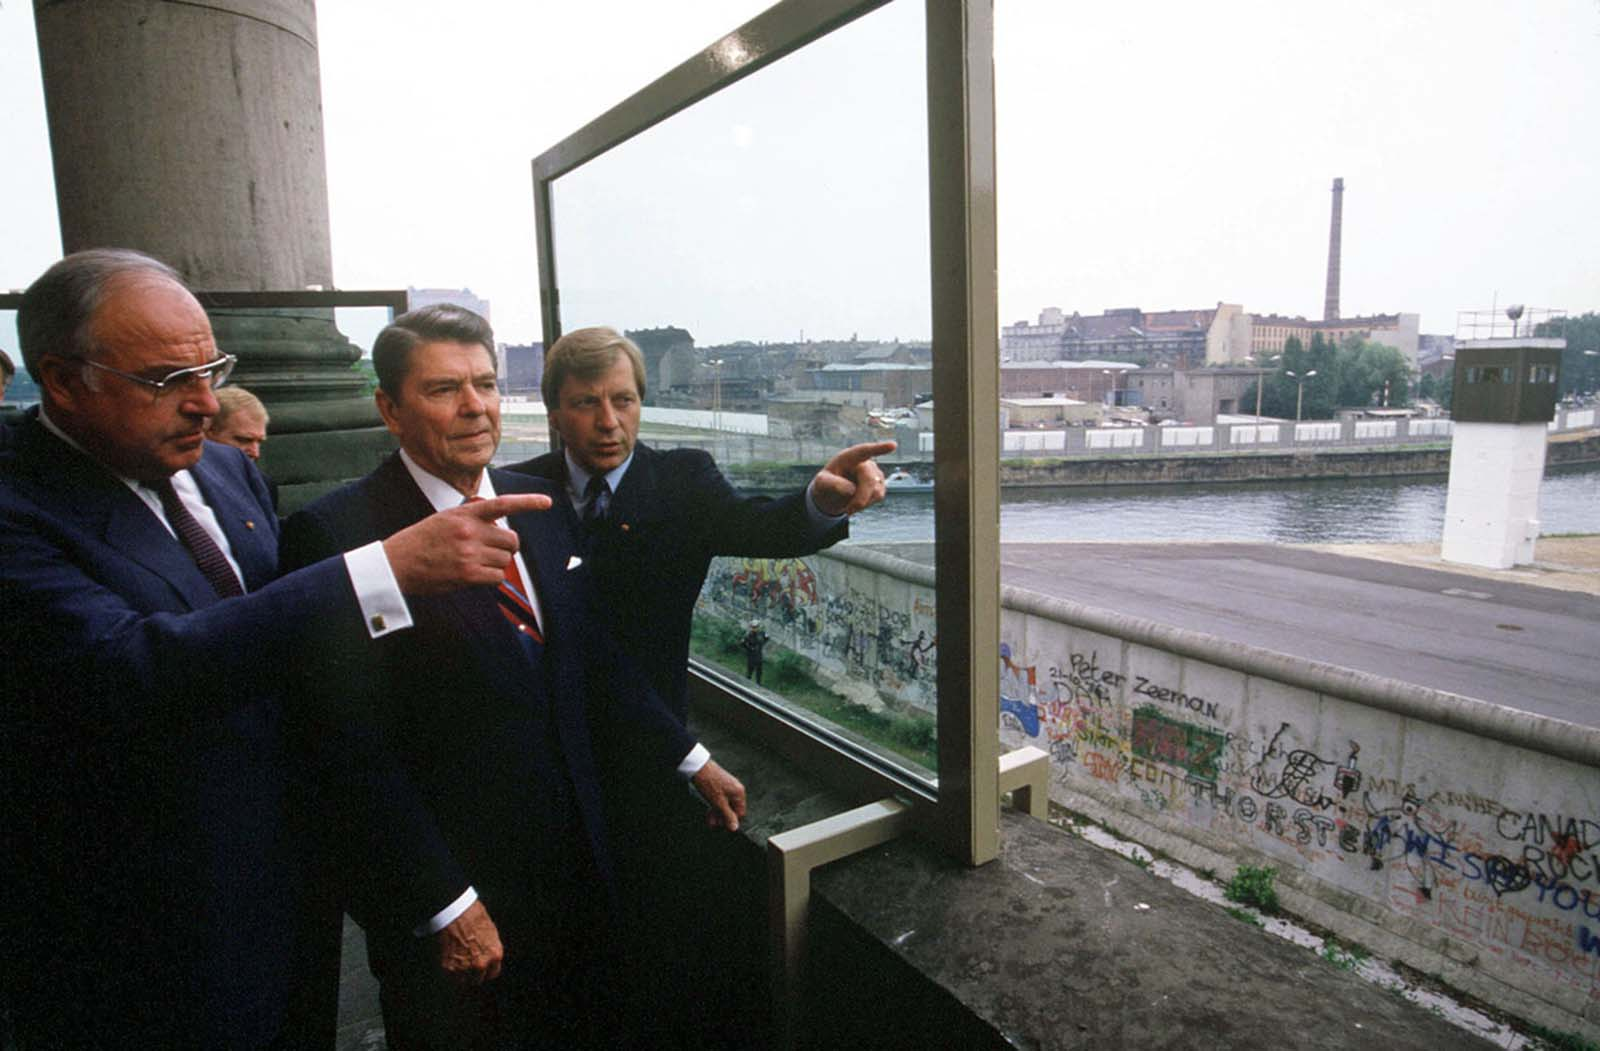 U.S. President Ronald Reagan visits the Berlin Wall with German Chancellor Helmut Kohl (left), in June 1987.